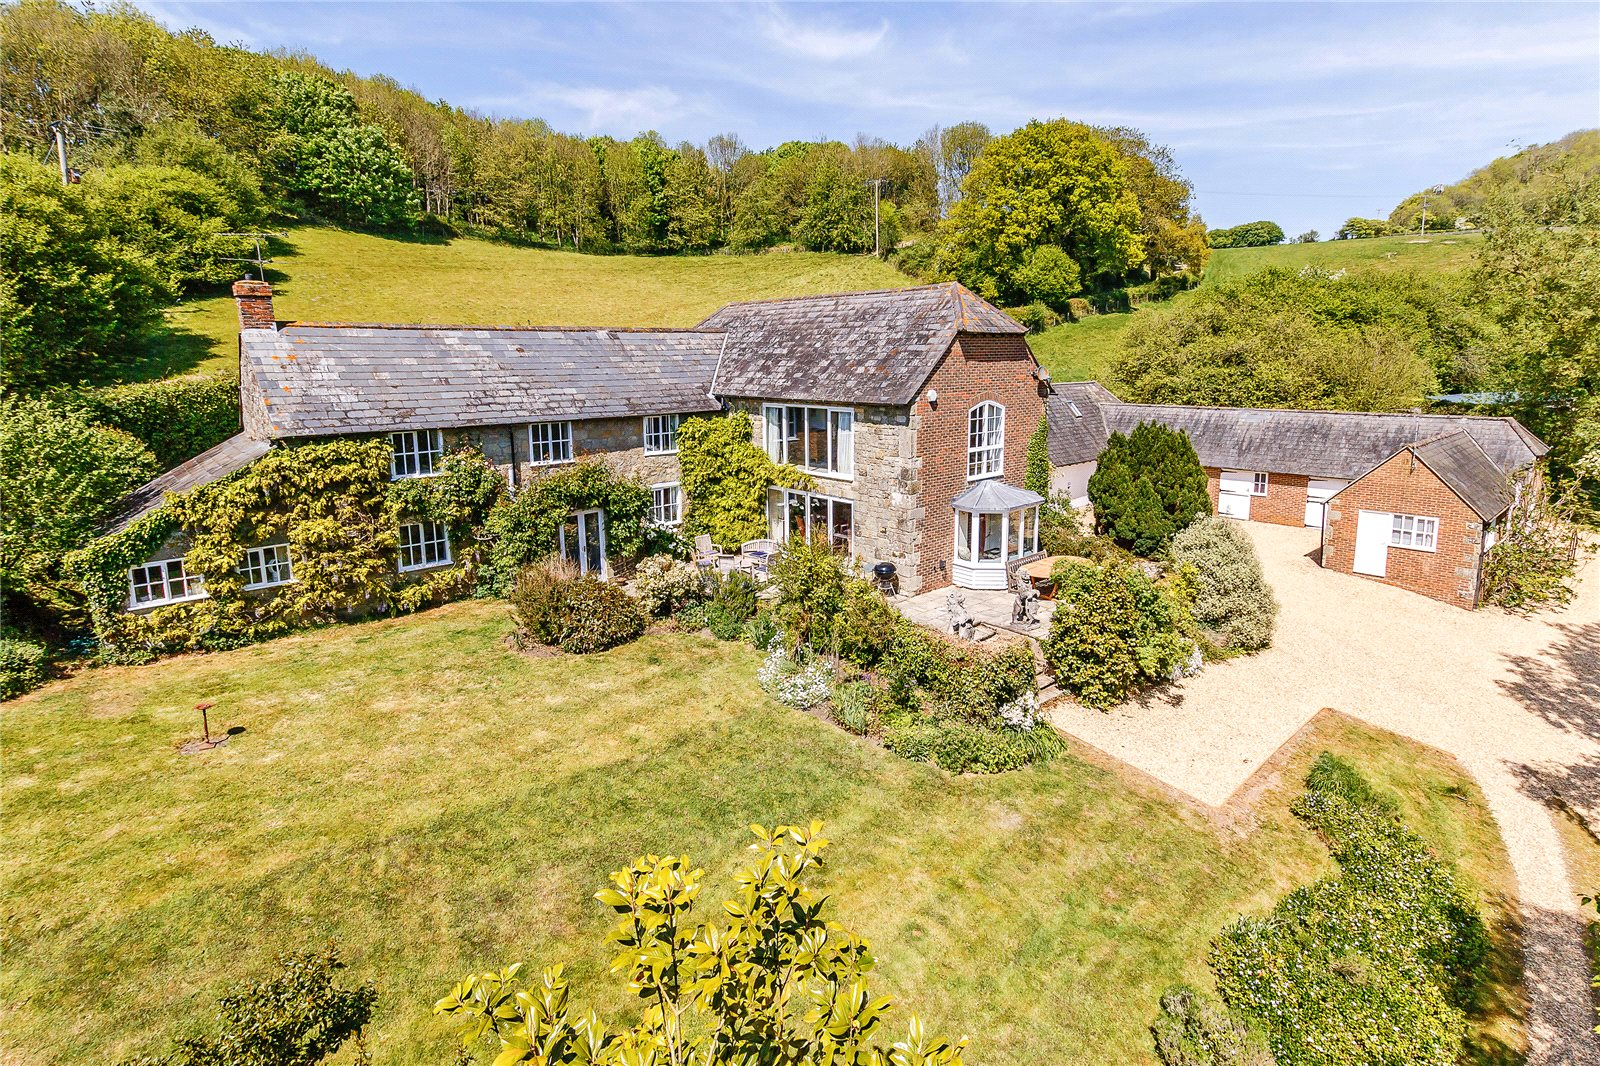 Single Family Home for Sale at Compton Abbas, Shaftesbury, Dorset, SP7 Shaftesbury, England